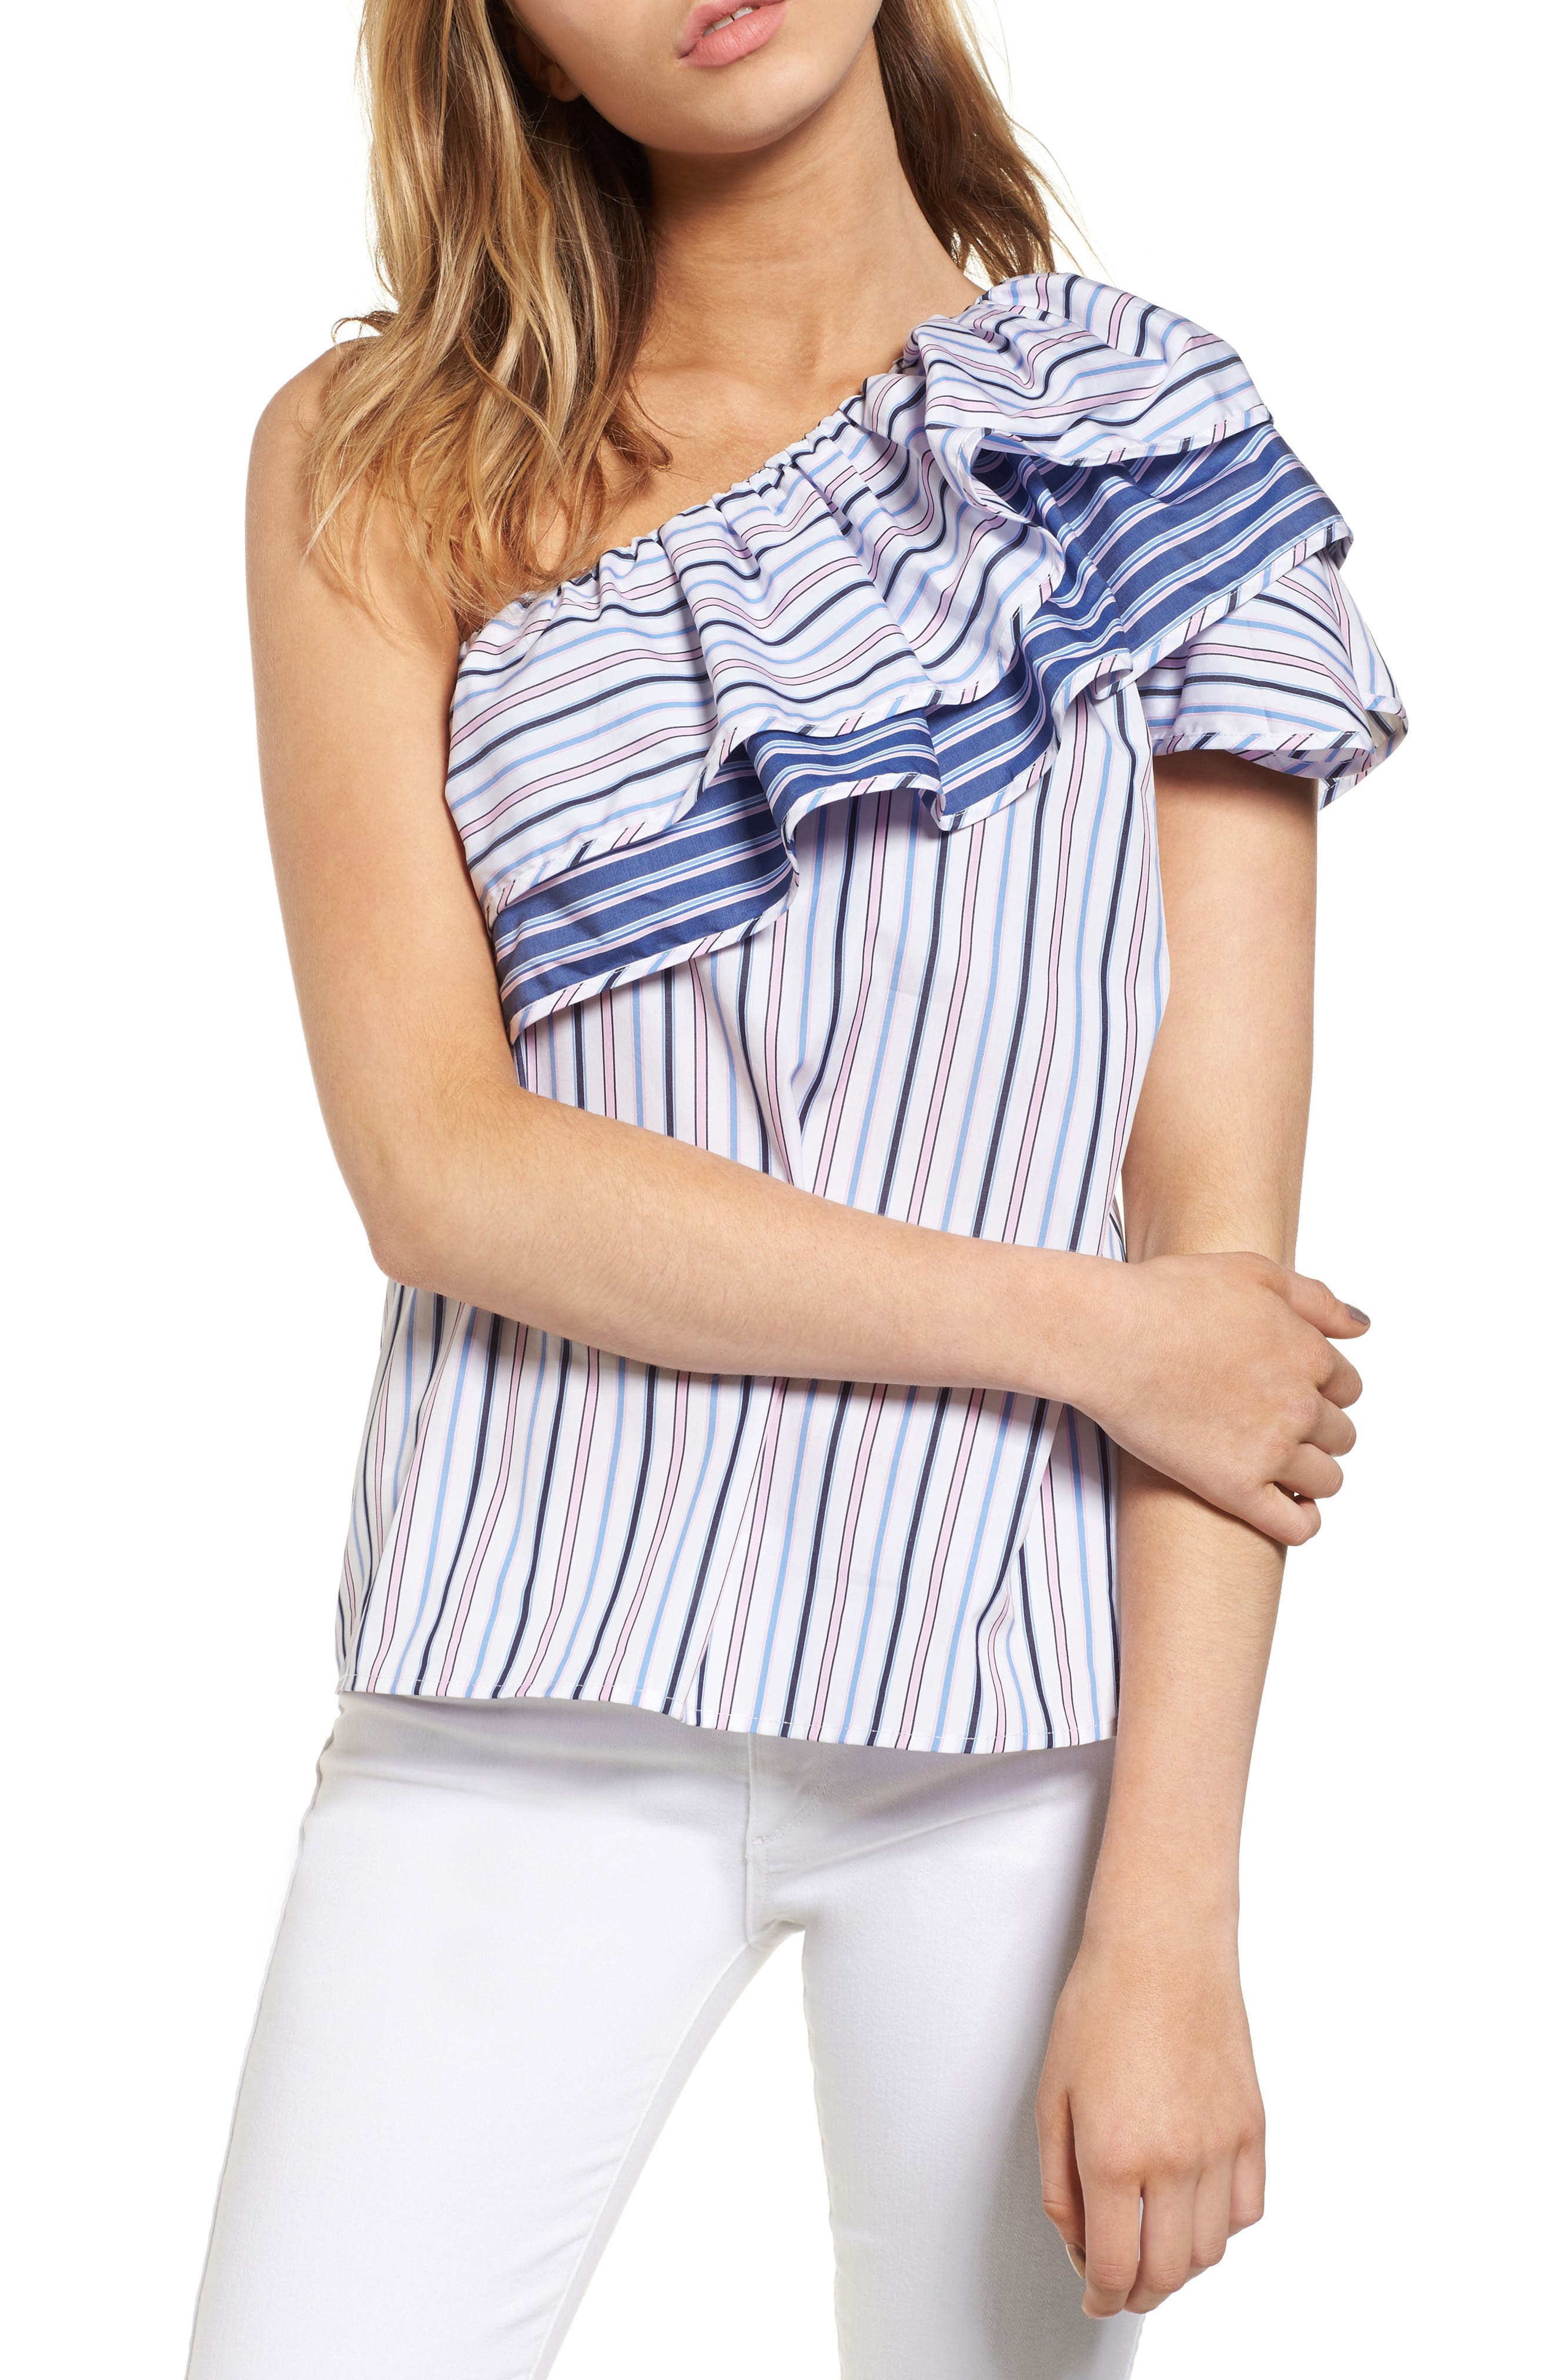 Mary One-Shoulder Top,                         Main,                         color, Multi Stripe